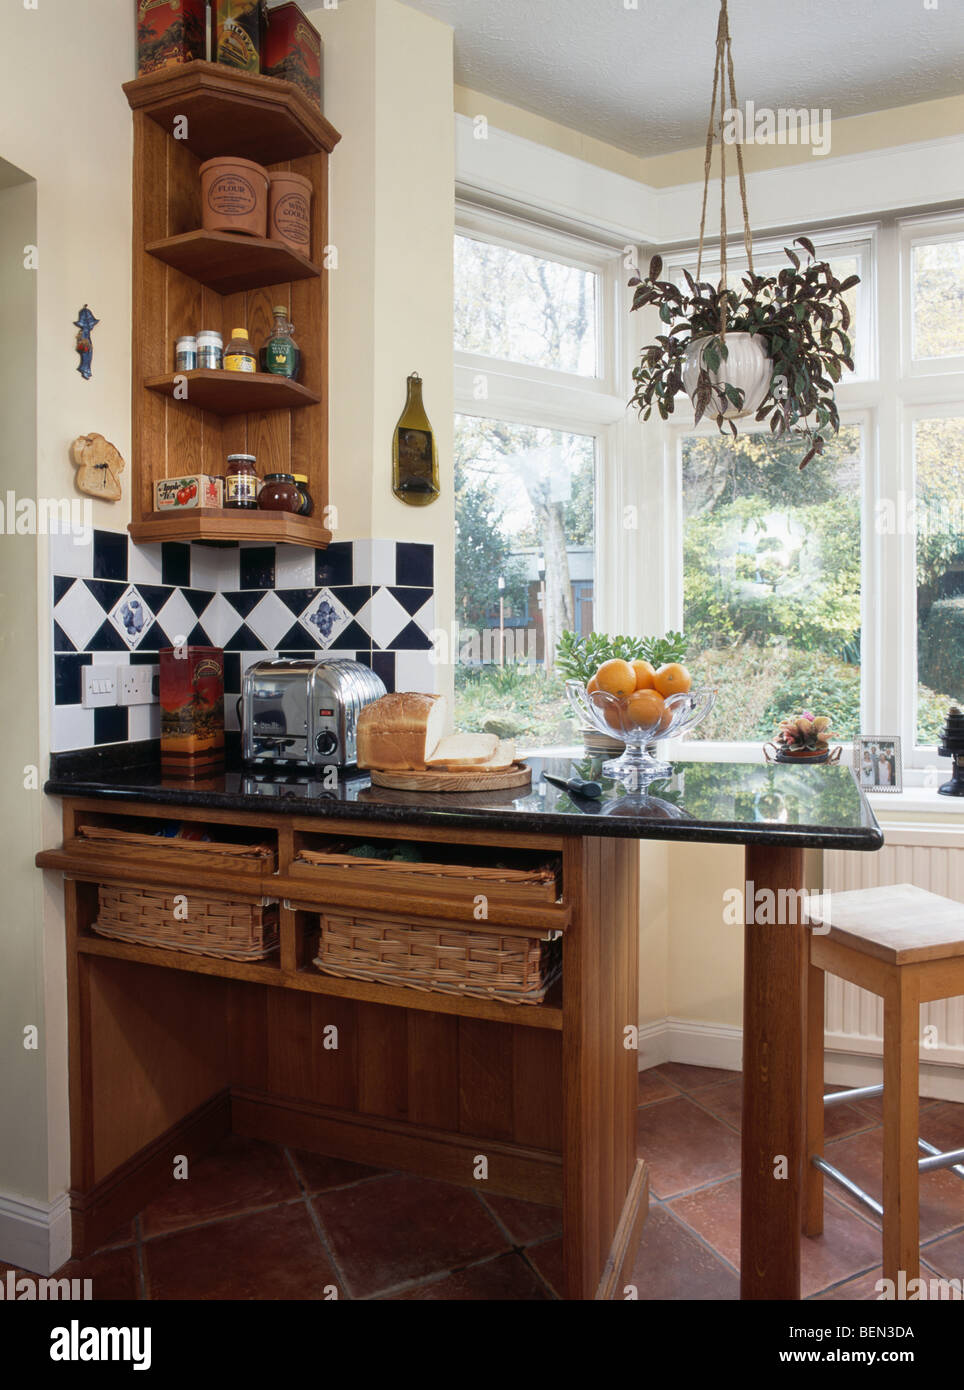 Gentil Small Wood Shelf Unit Above Granite Topped Breakfast Bar With Storage  Baskets Below Worktop In Country Kitchen